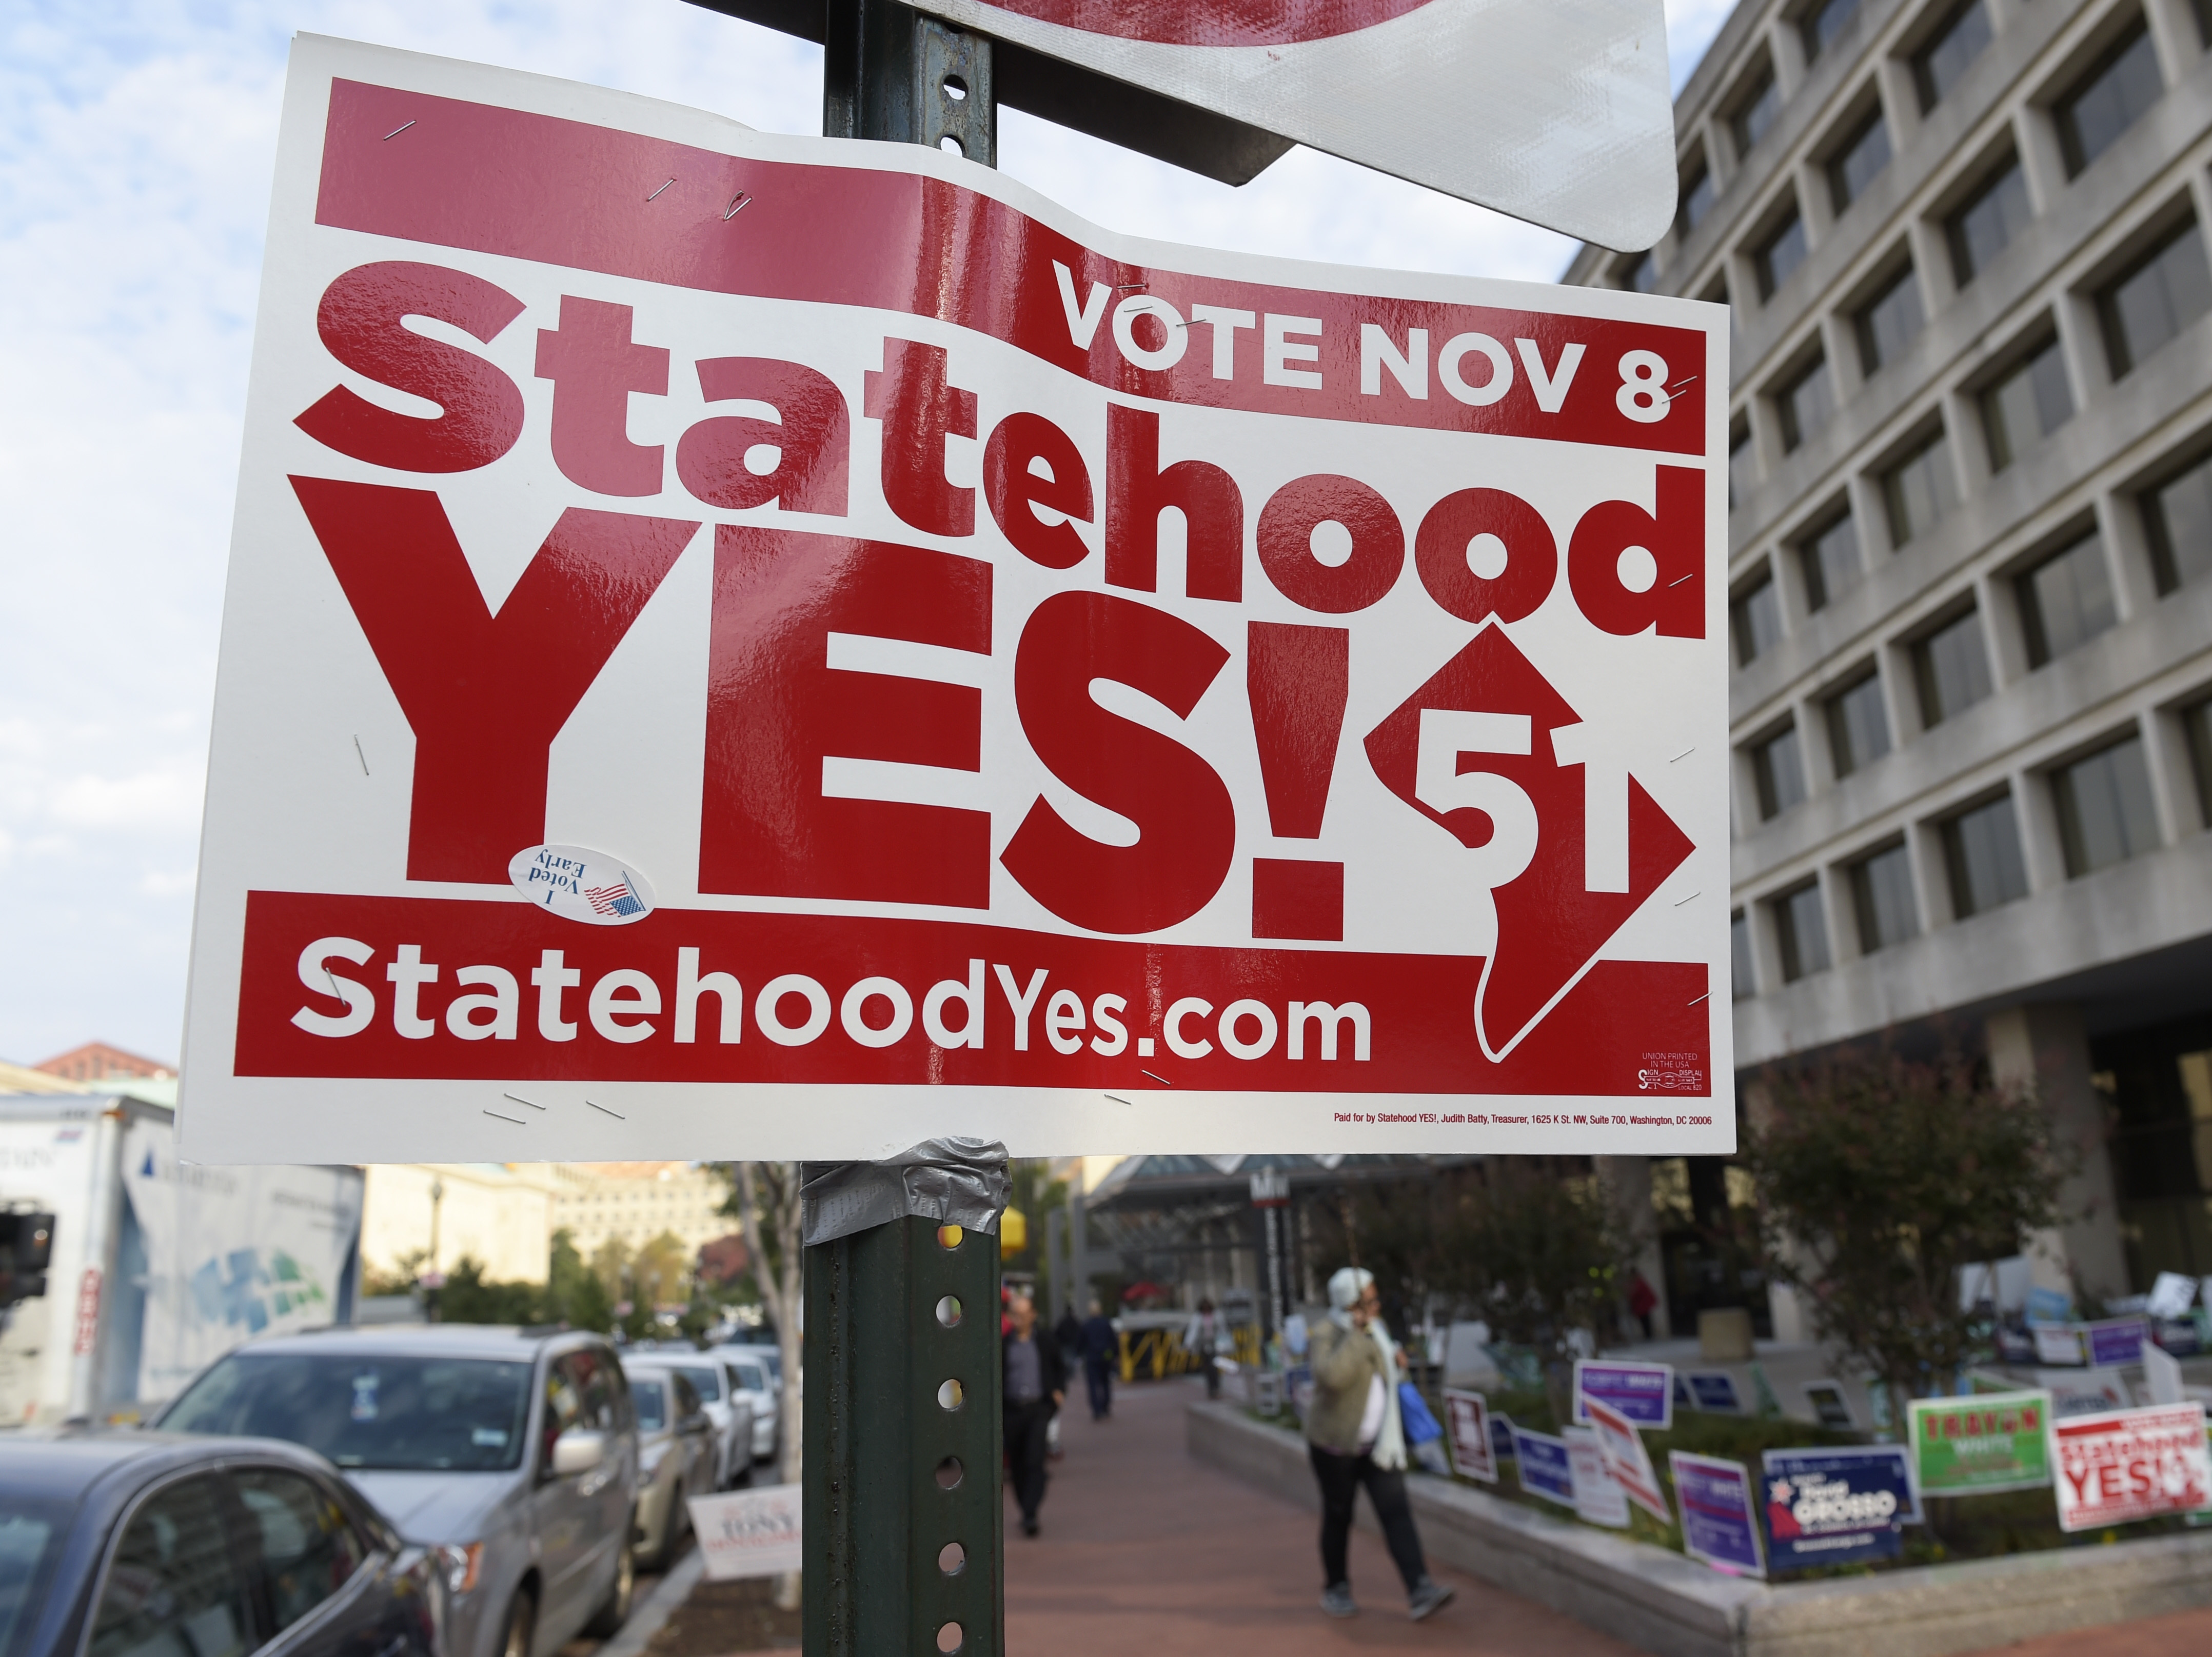 A sign supporting D.C. statehood on display outside an early voting place on Nov. 3.